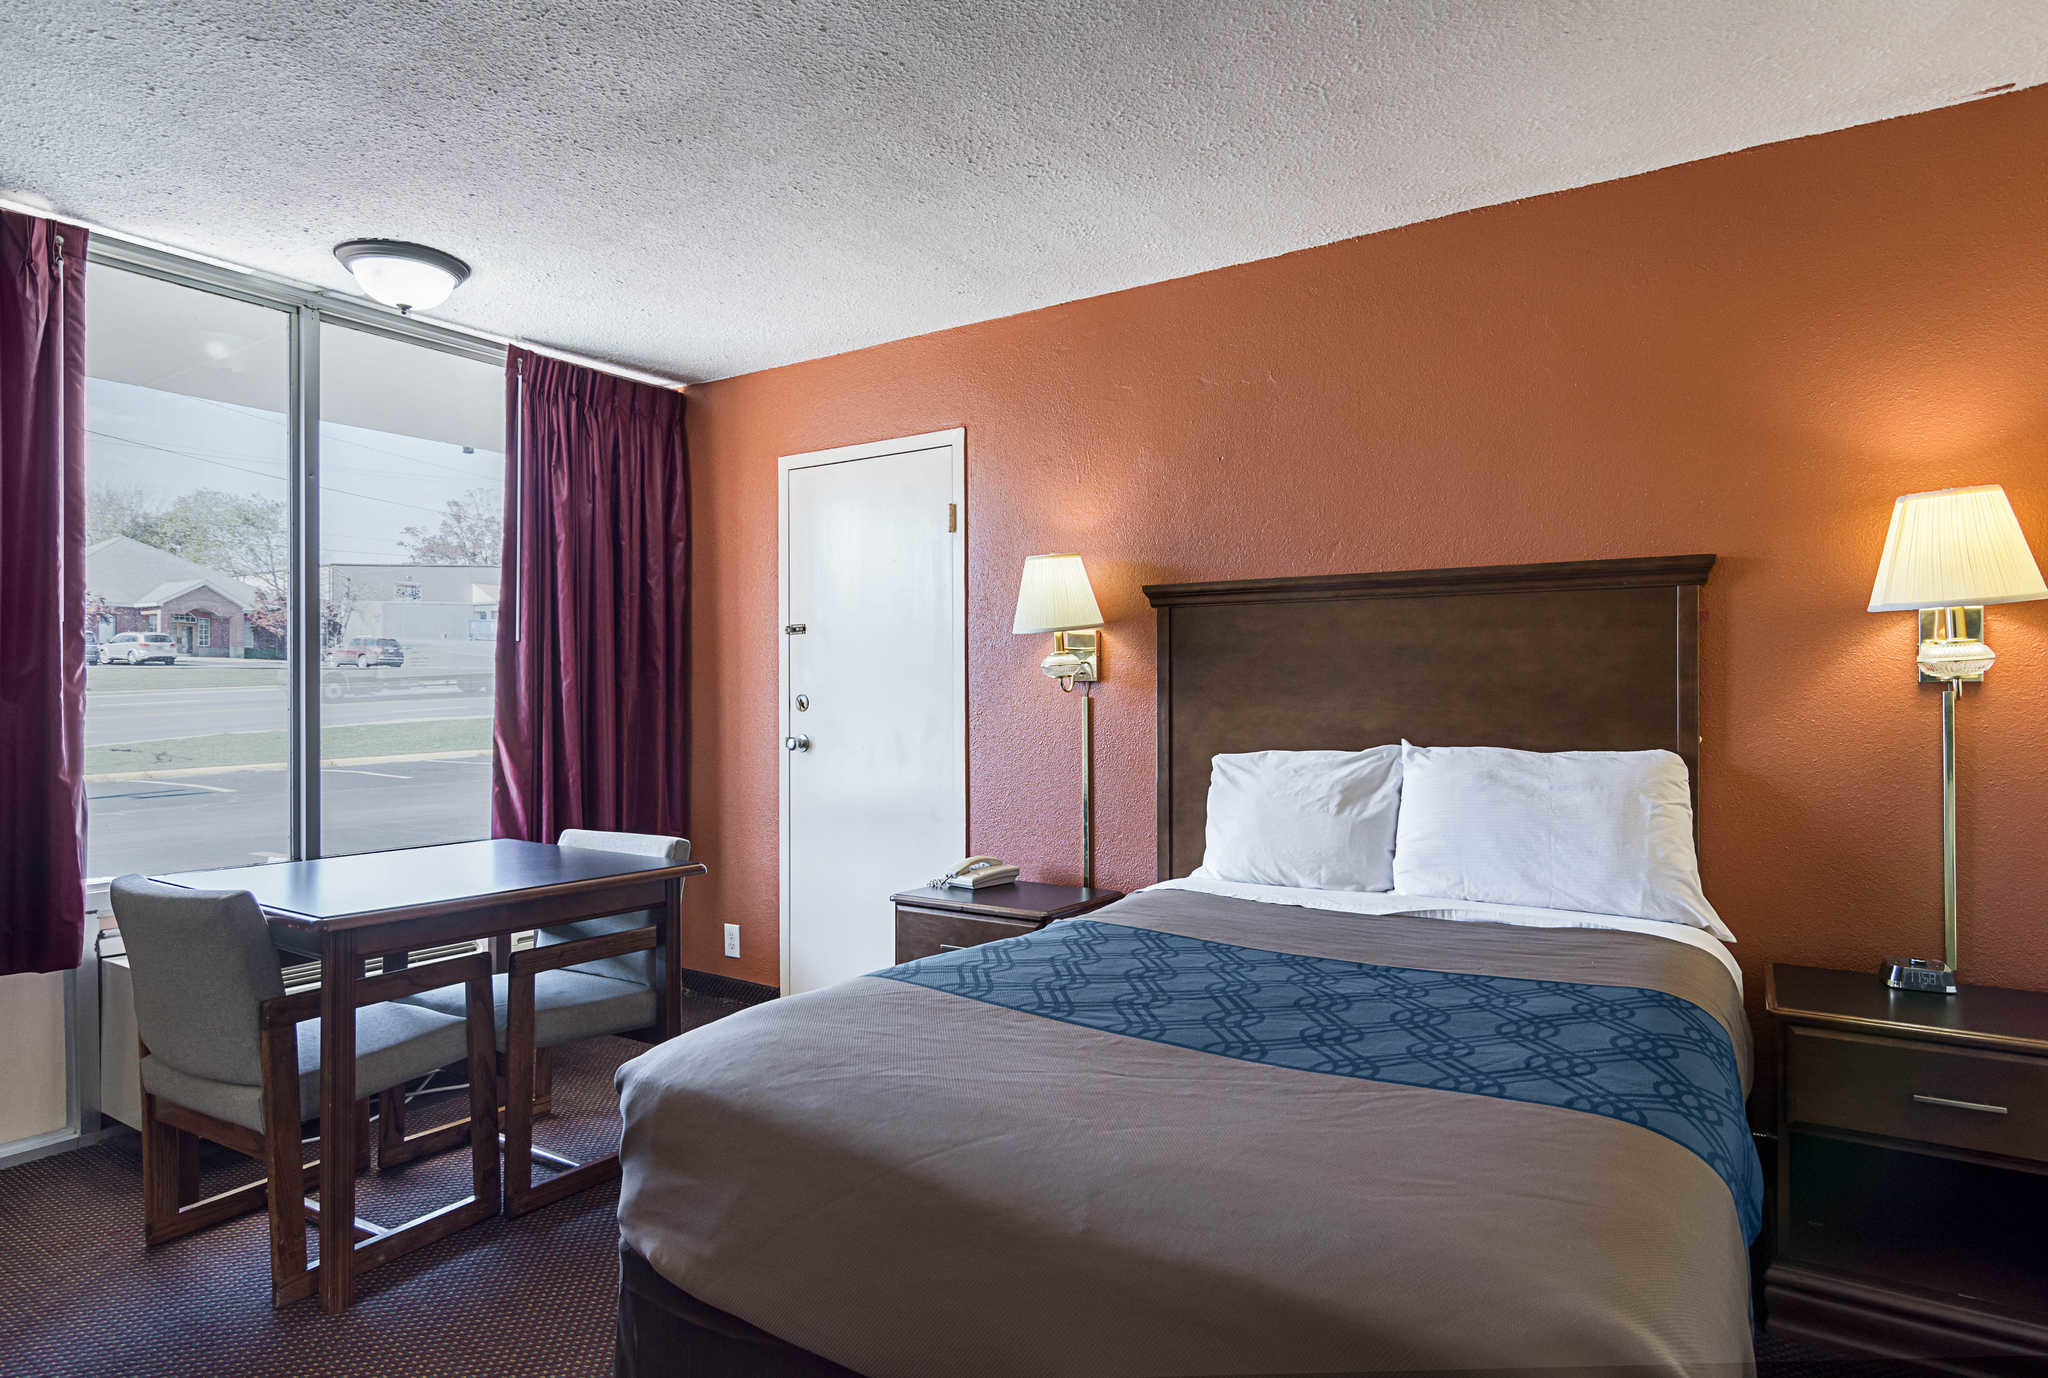 Econo Lodge image 7